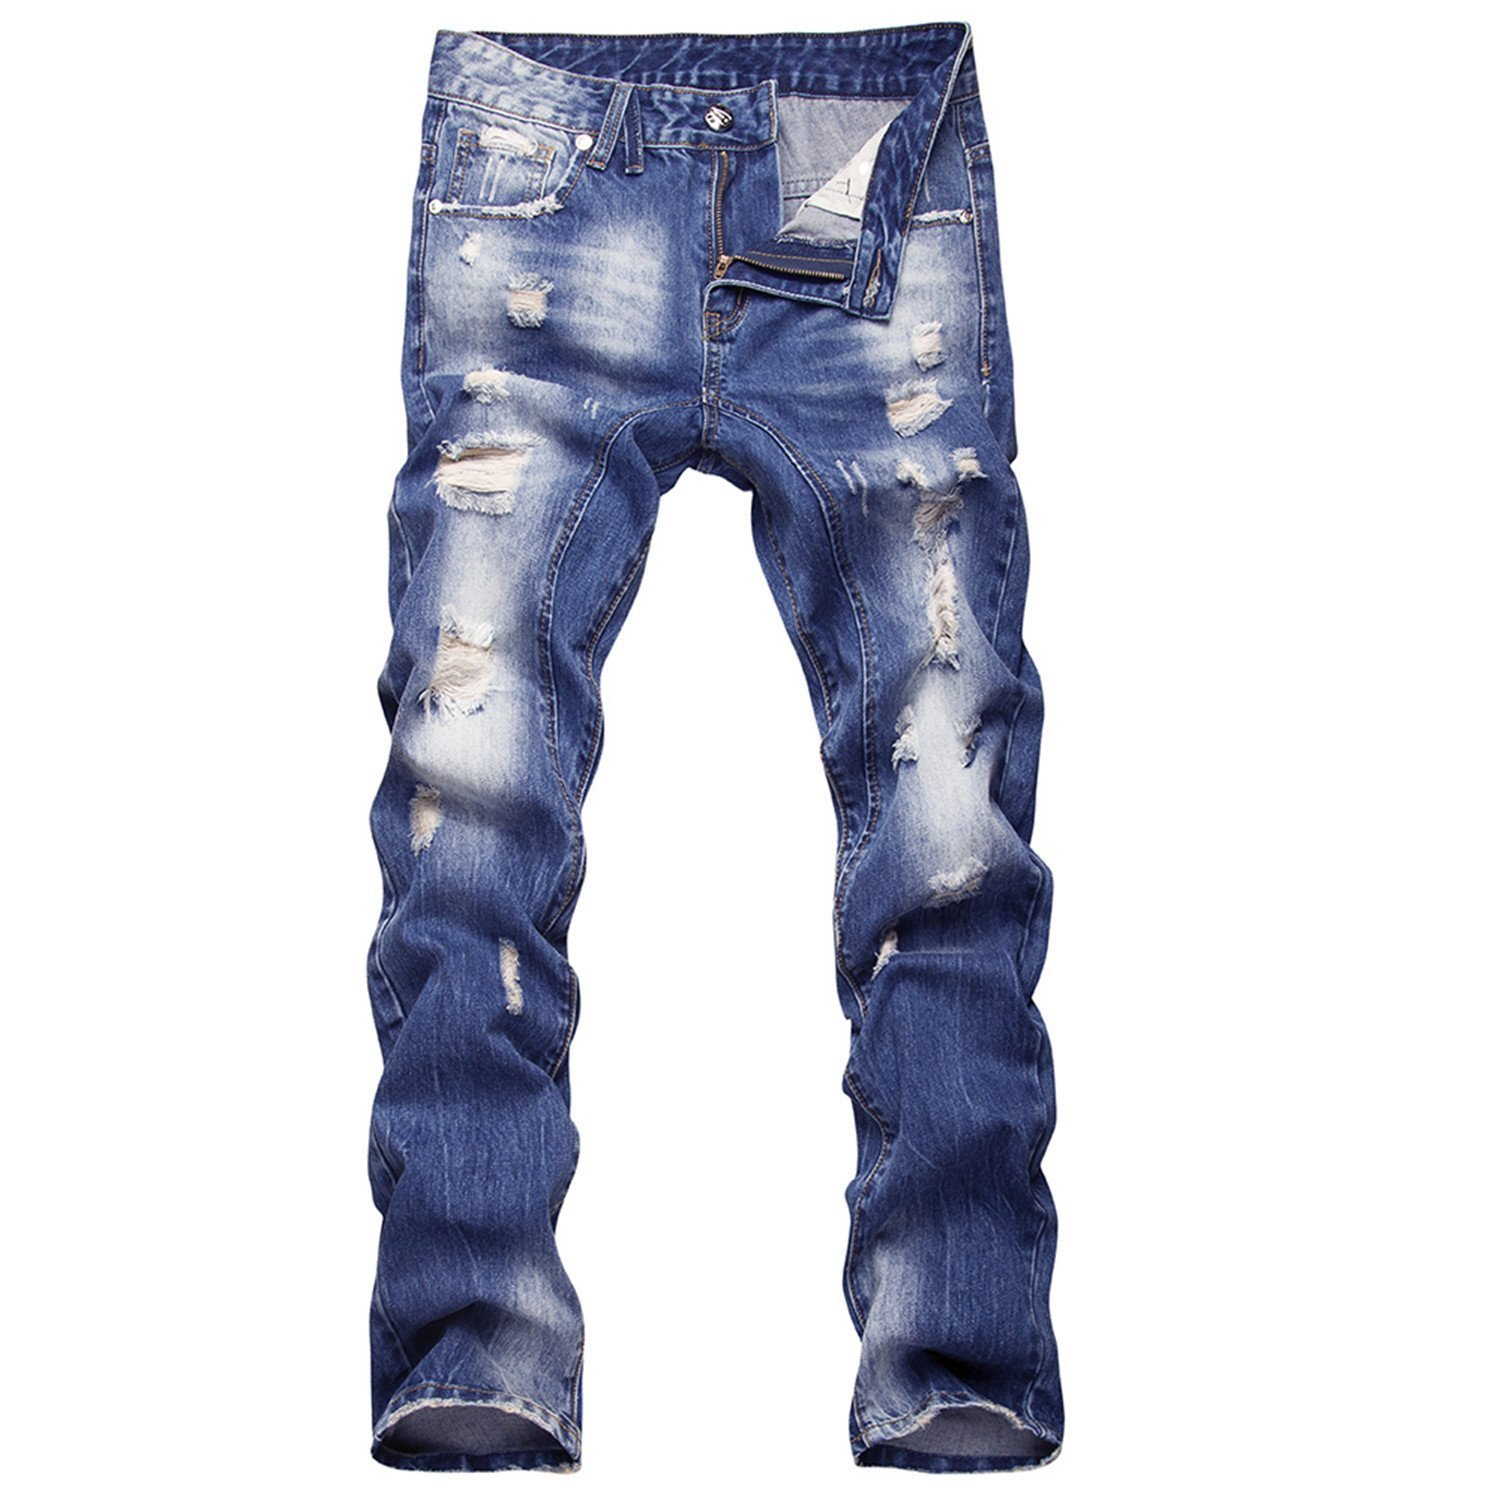 TOPING Fine 2018 New Style Hole Patch Beggars Slim Men Jeans Pants Men's Denim Straight Trousers 29-40 AYG26 Fashion30